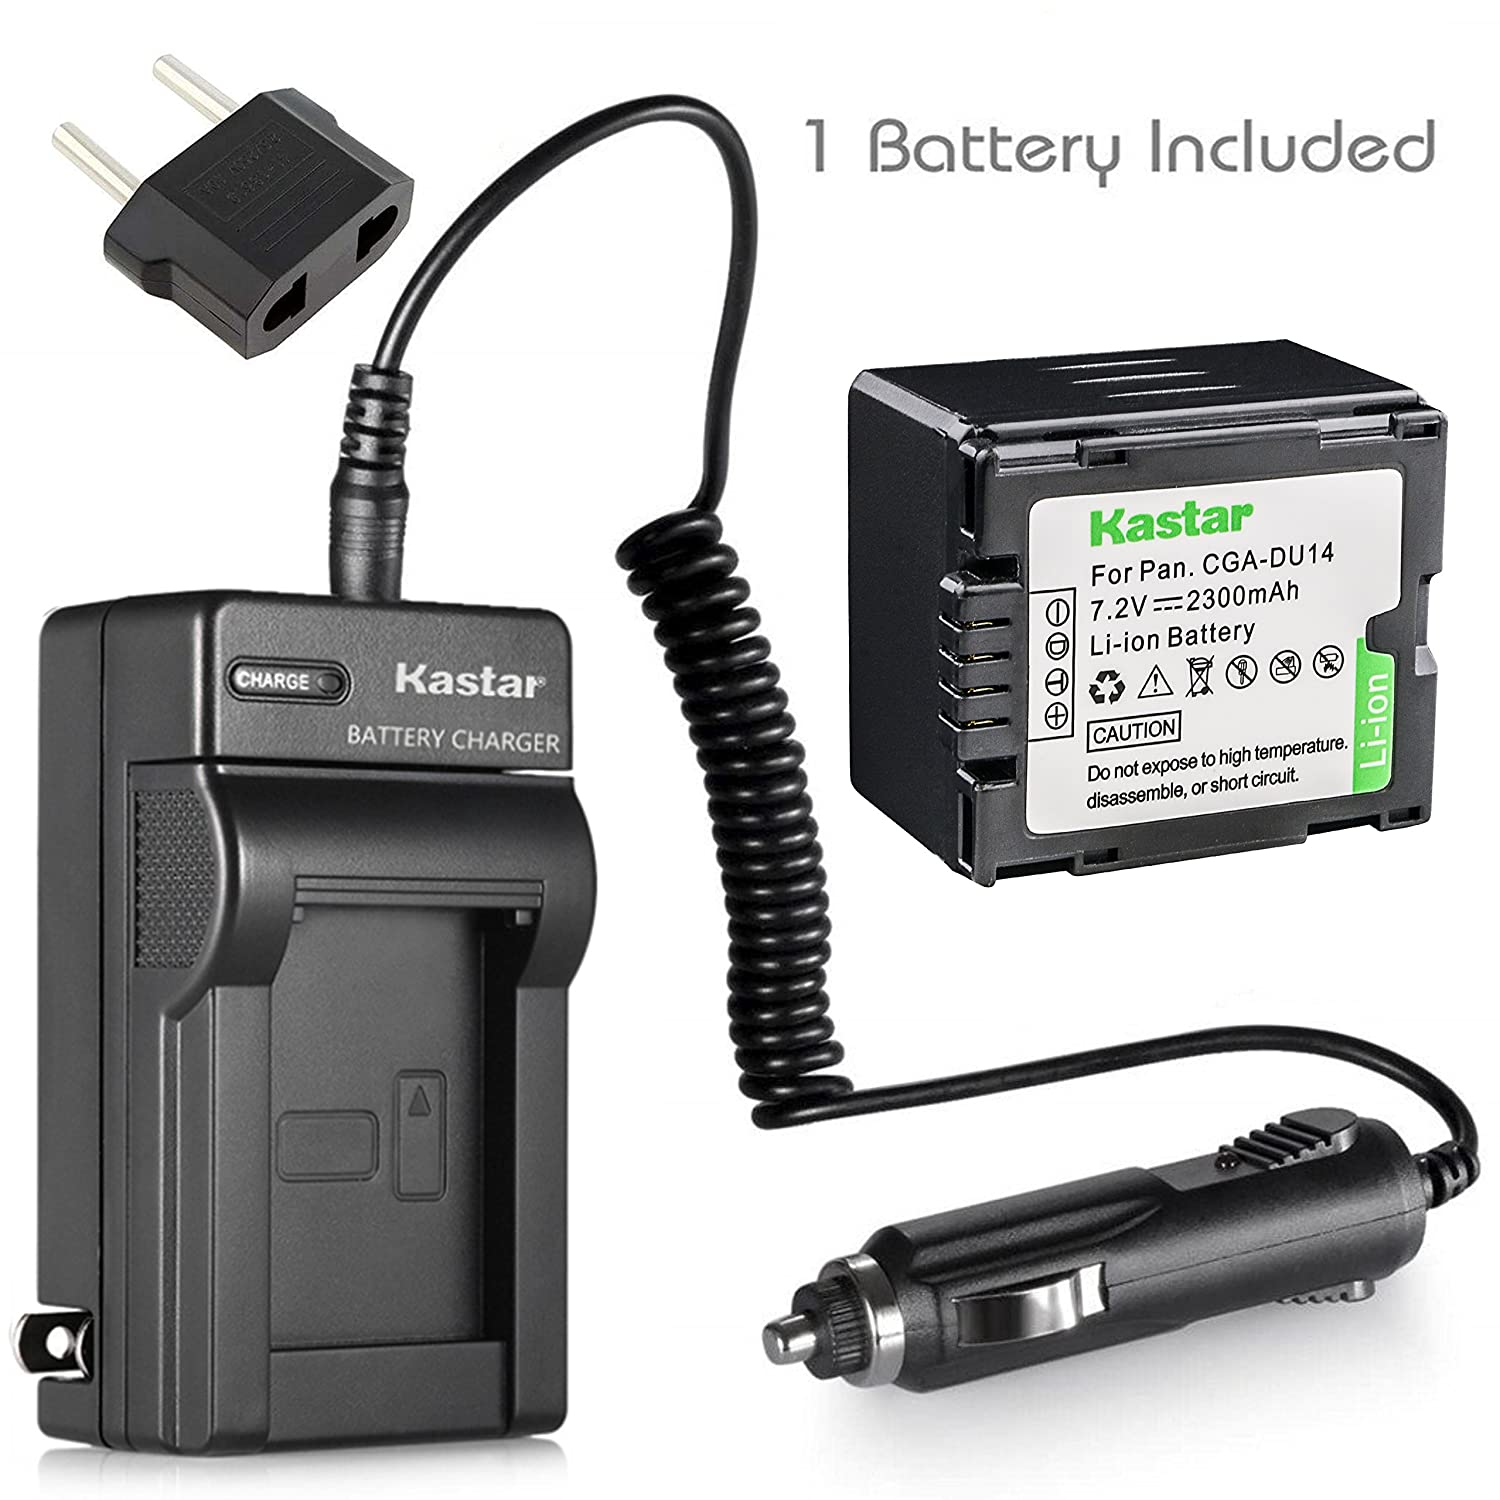 Amazon.com : Kastar Battery and Charger for Panasonic VDR-D230 VDR-D250 VDR-D300  VDR-D310 VDR-M30 VDR-M50 VDR-M53 VDR-M70 VDR-M95 VDR-M250 Camcorder and ...